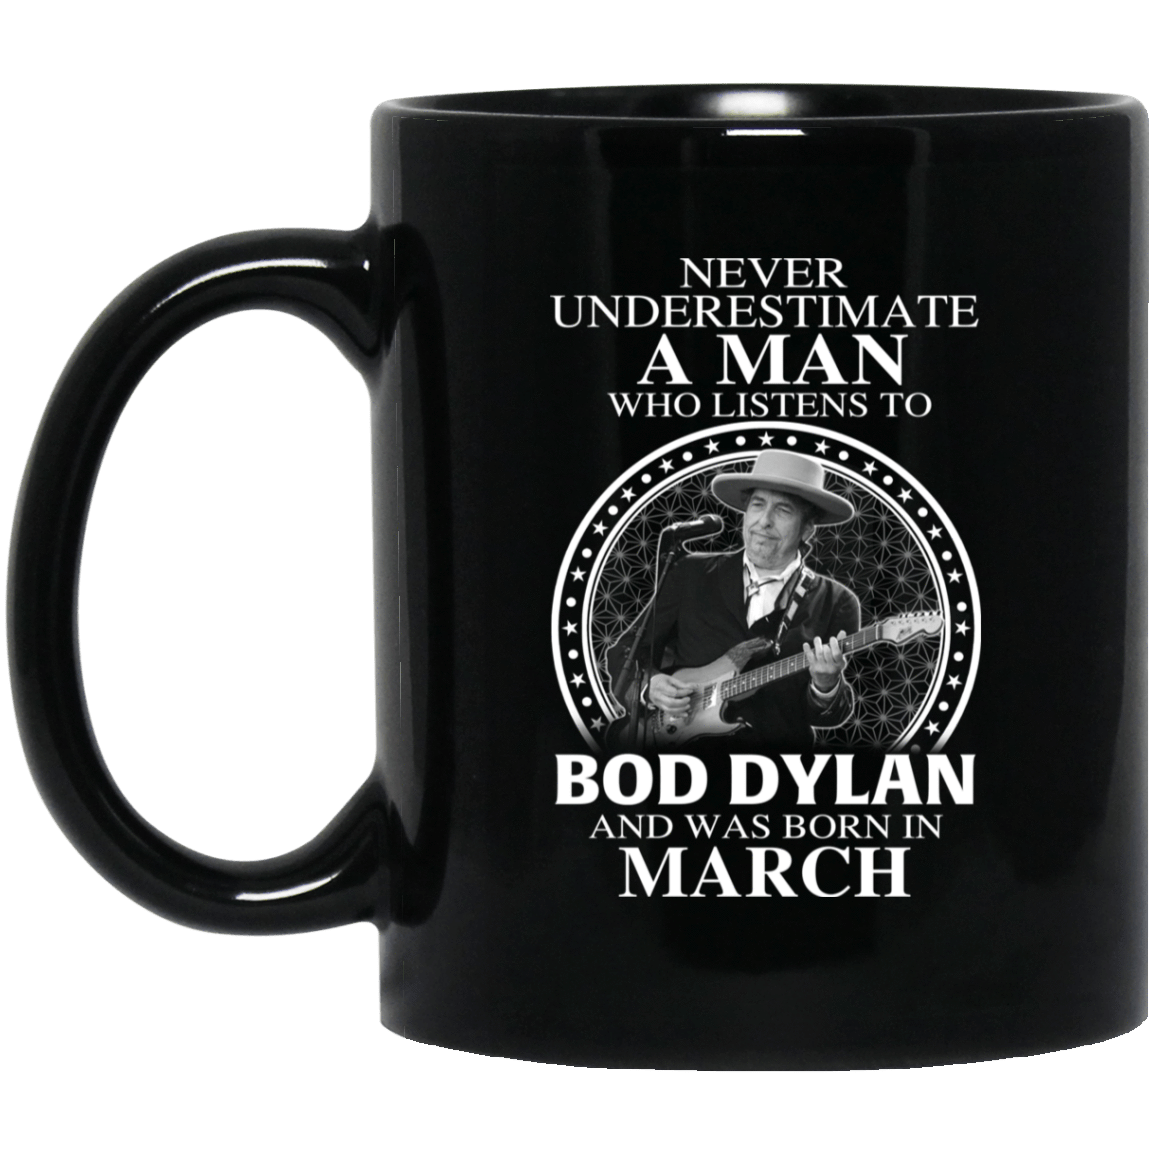 A Man Who Listens To Bob Dylan And Was Born In March Mug 1065-10181-76154691-49307 - Tee Ript